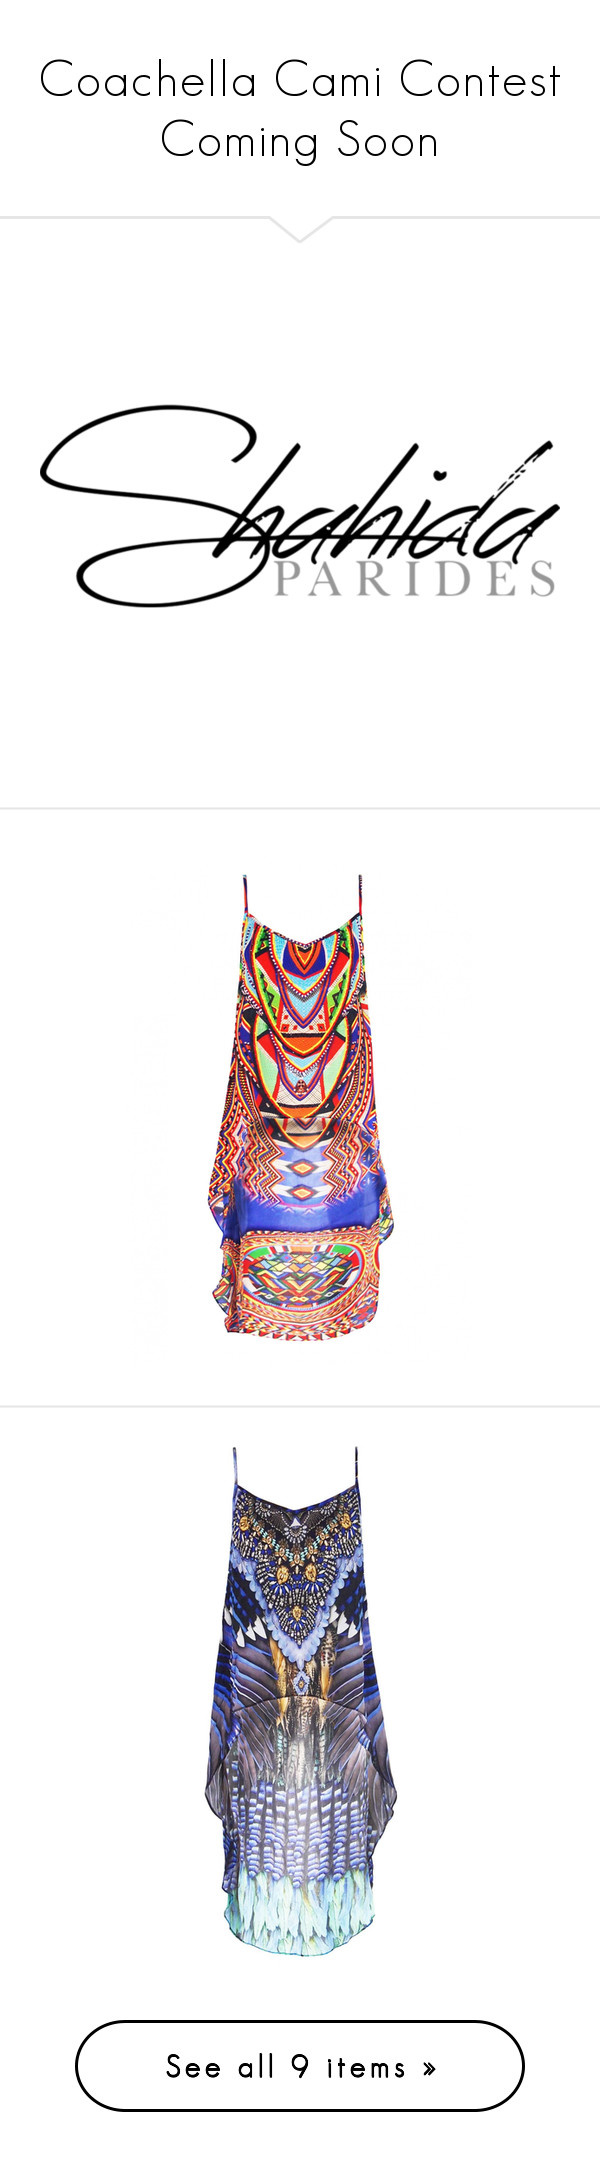 """""""Coachella Cami Contest Coming Soon"""" by shahida-parides ❤ liked on Polyvore featuring dresses, logo, tops, boho chic tops, bohemian style tops, colorful tops, tribal print tops, bohemian tops, feather top and embellished top"""